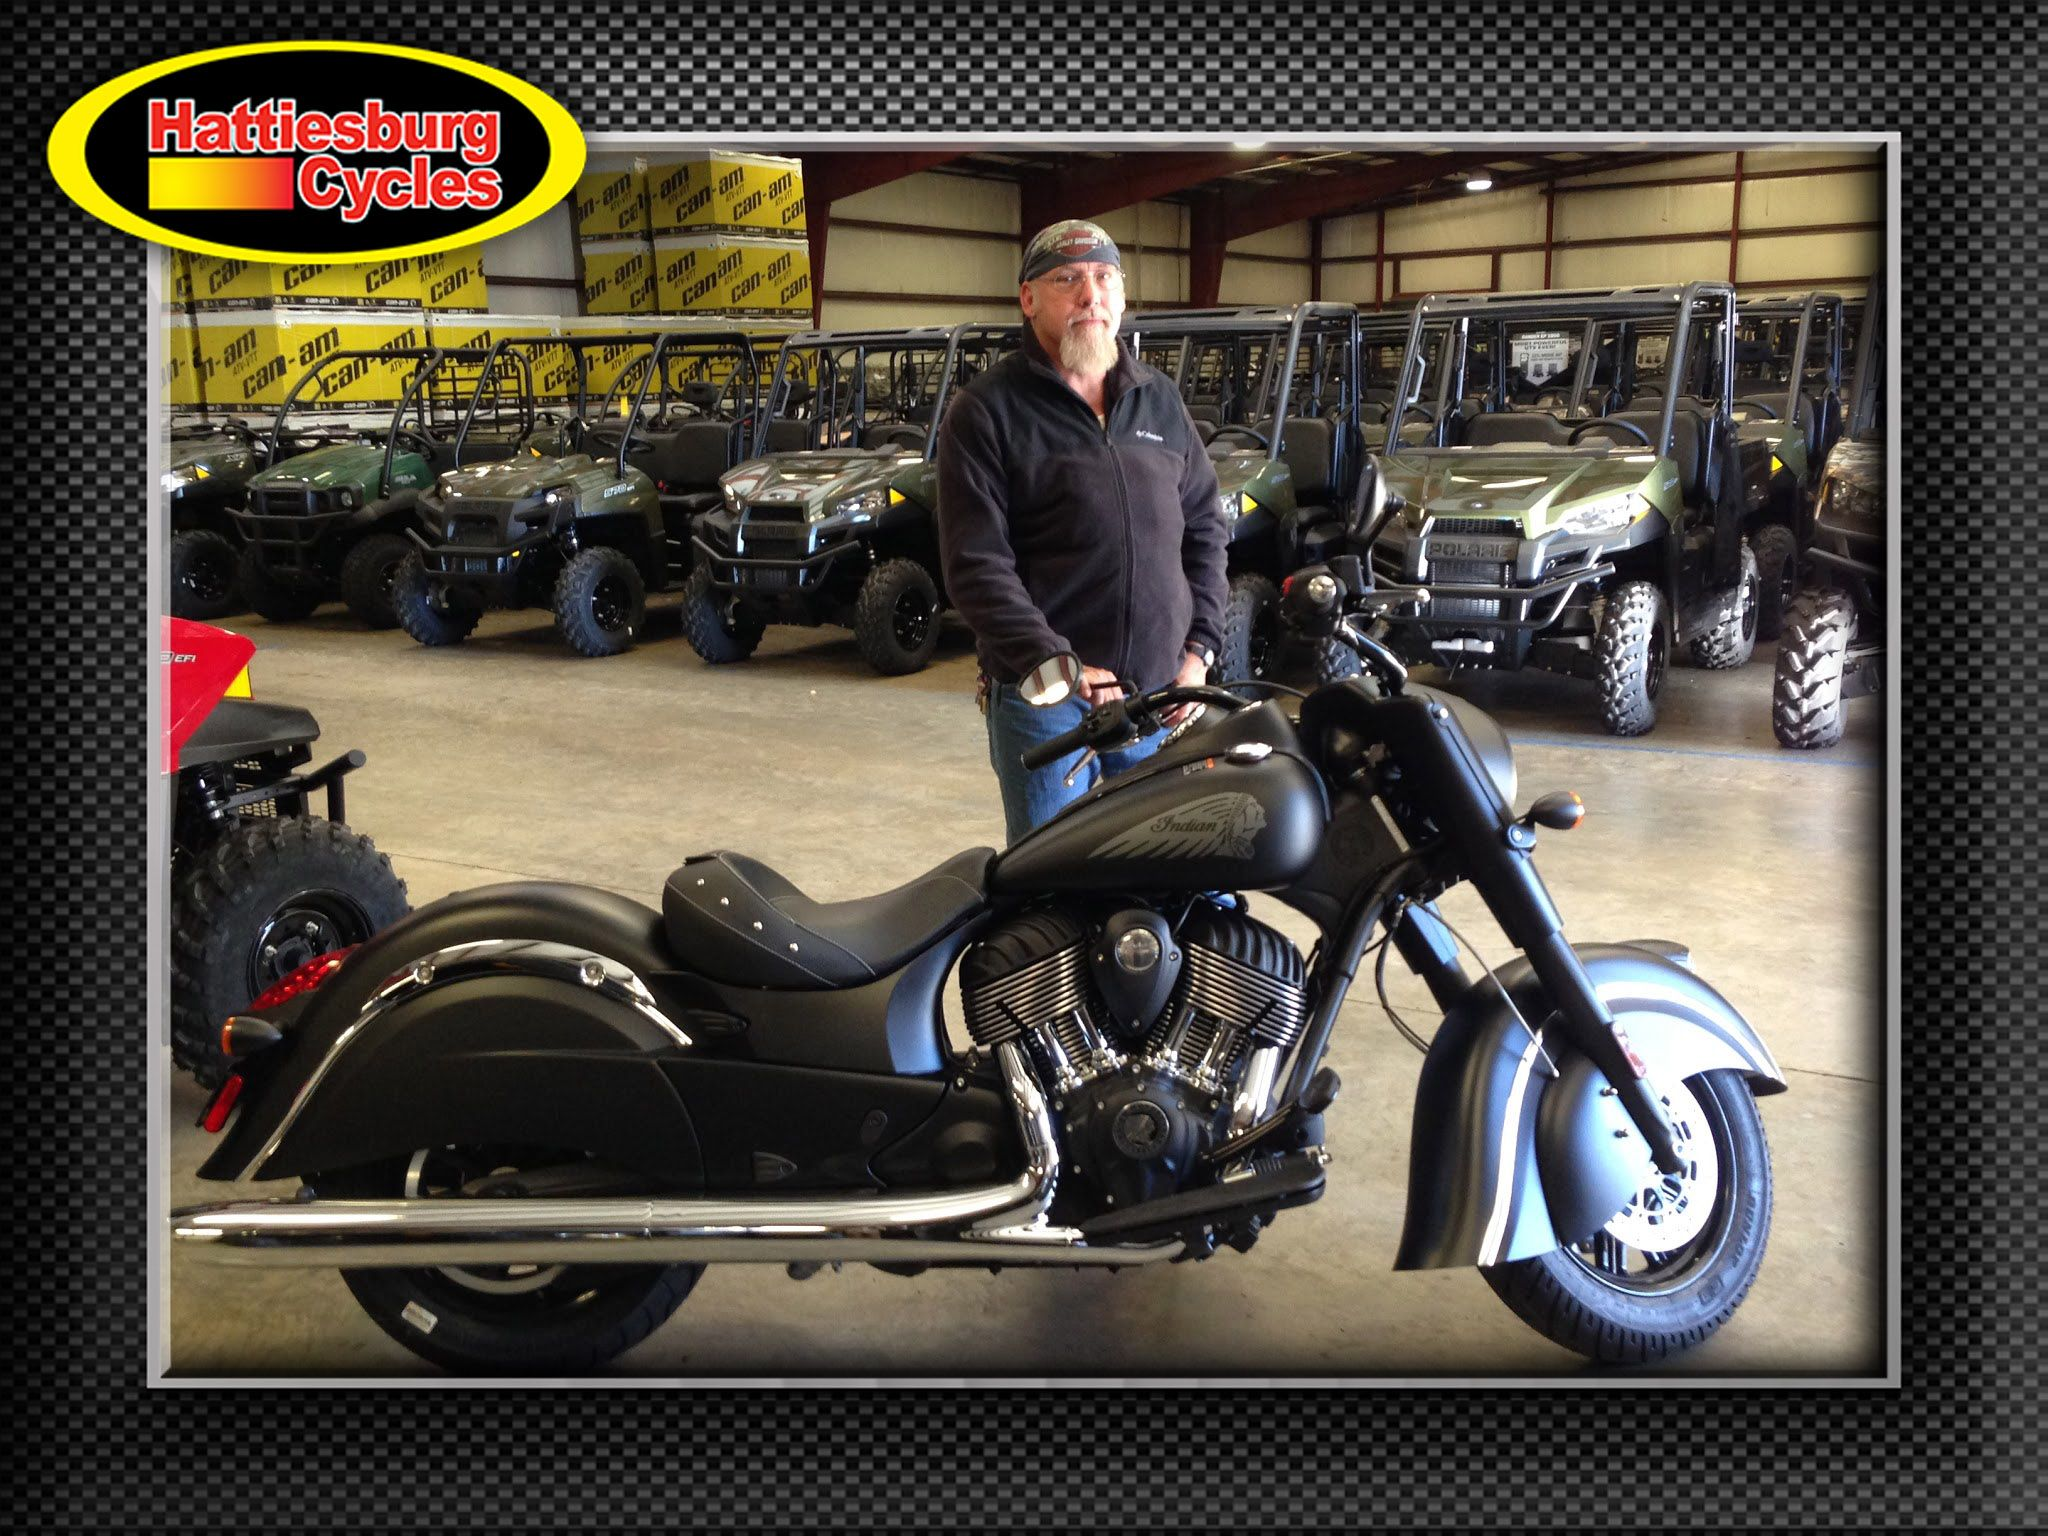 Thanks to James Haas from Abita Springs LA for getting a 2016 Indian Dark Horse. @HattiesburgCycles